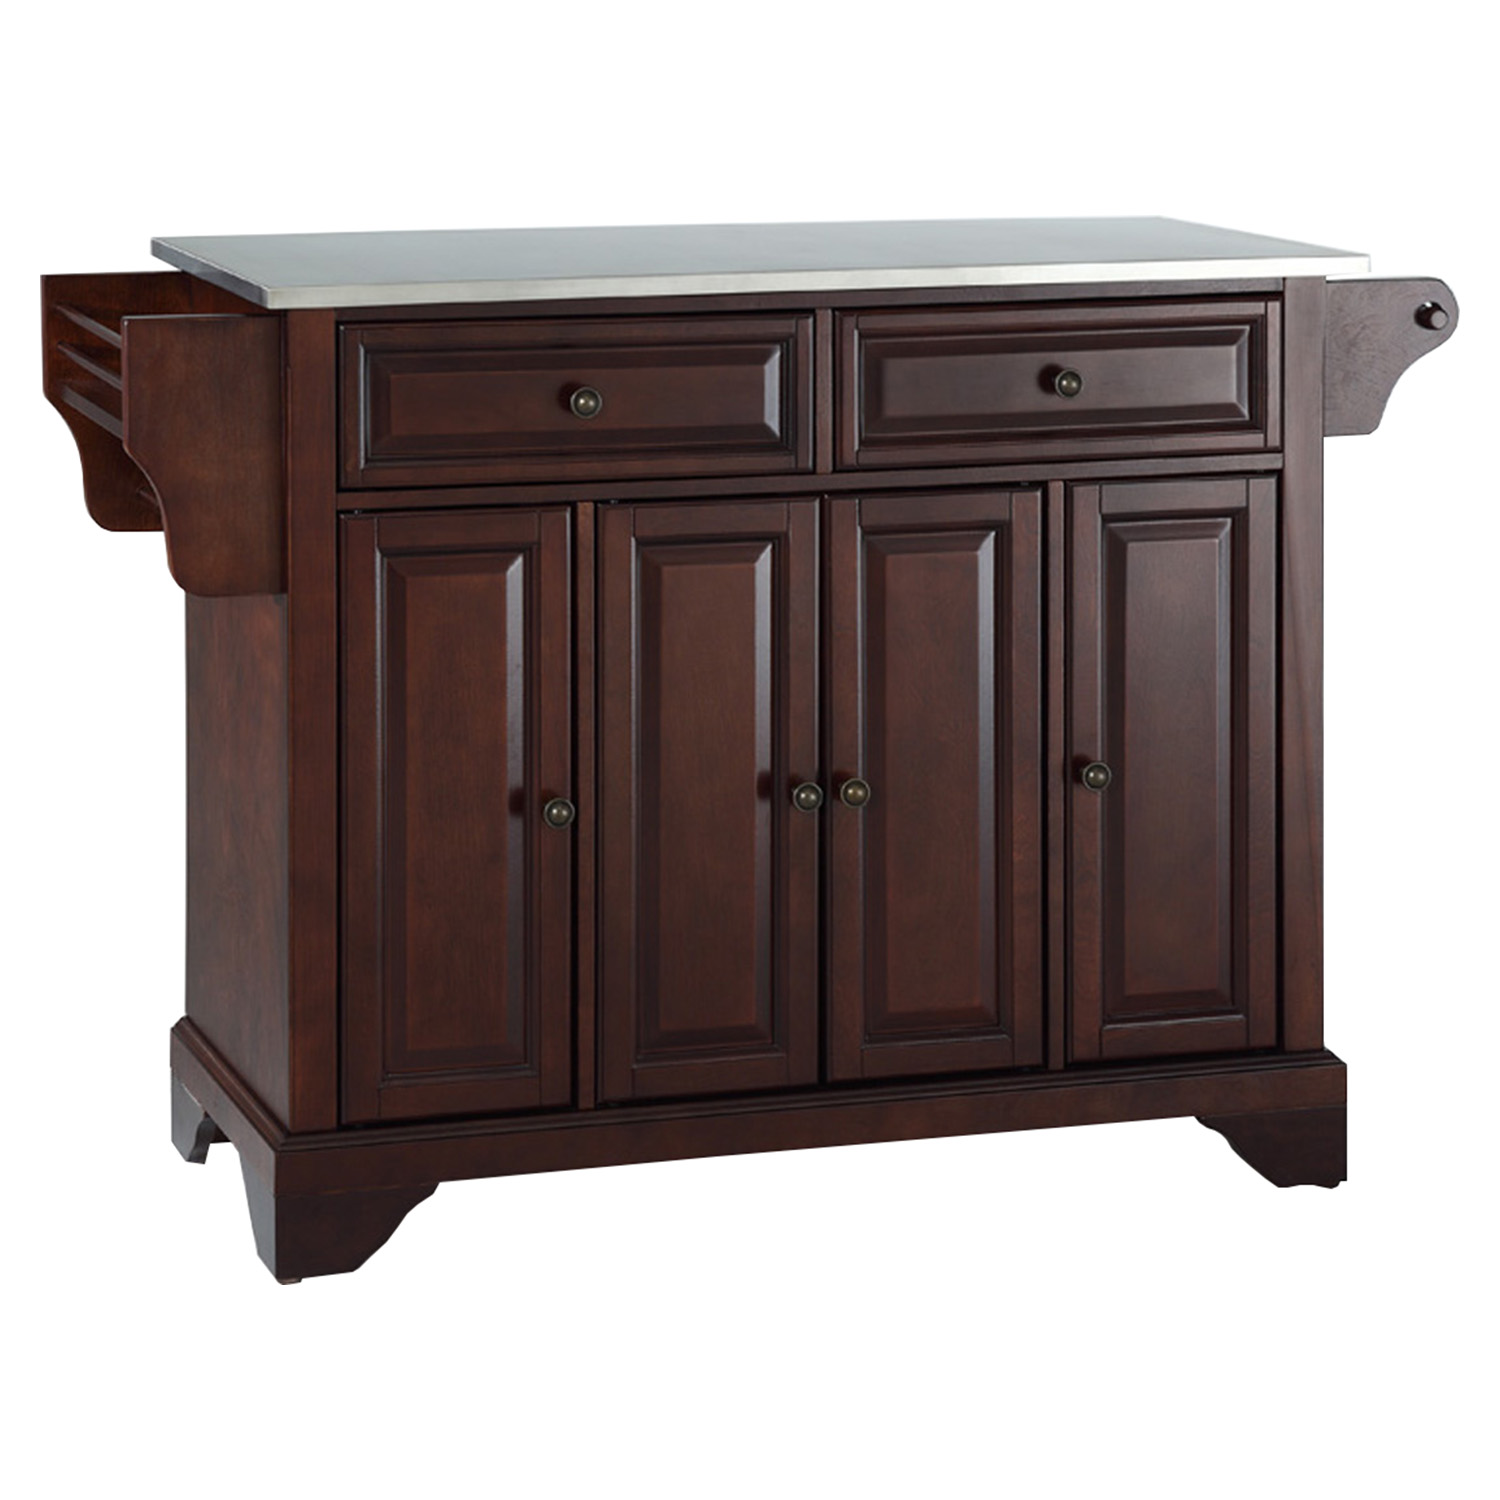 LaFayette Stainless Steel Top Kitchen Island - Vintage Mahogany - CROS-KF30002BMA